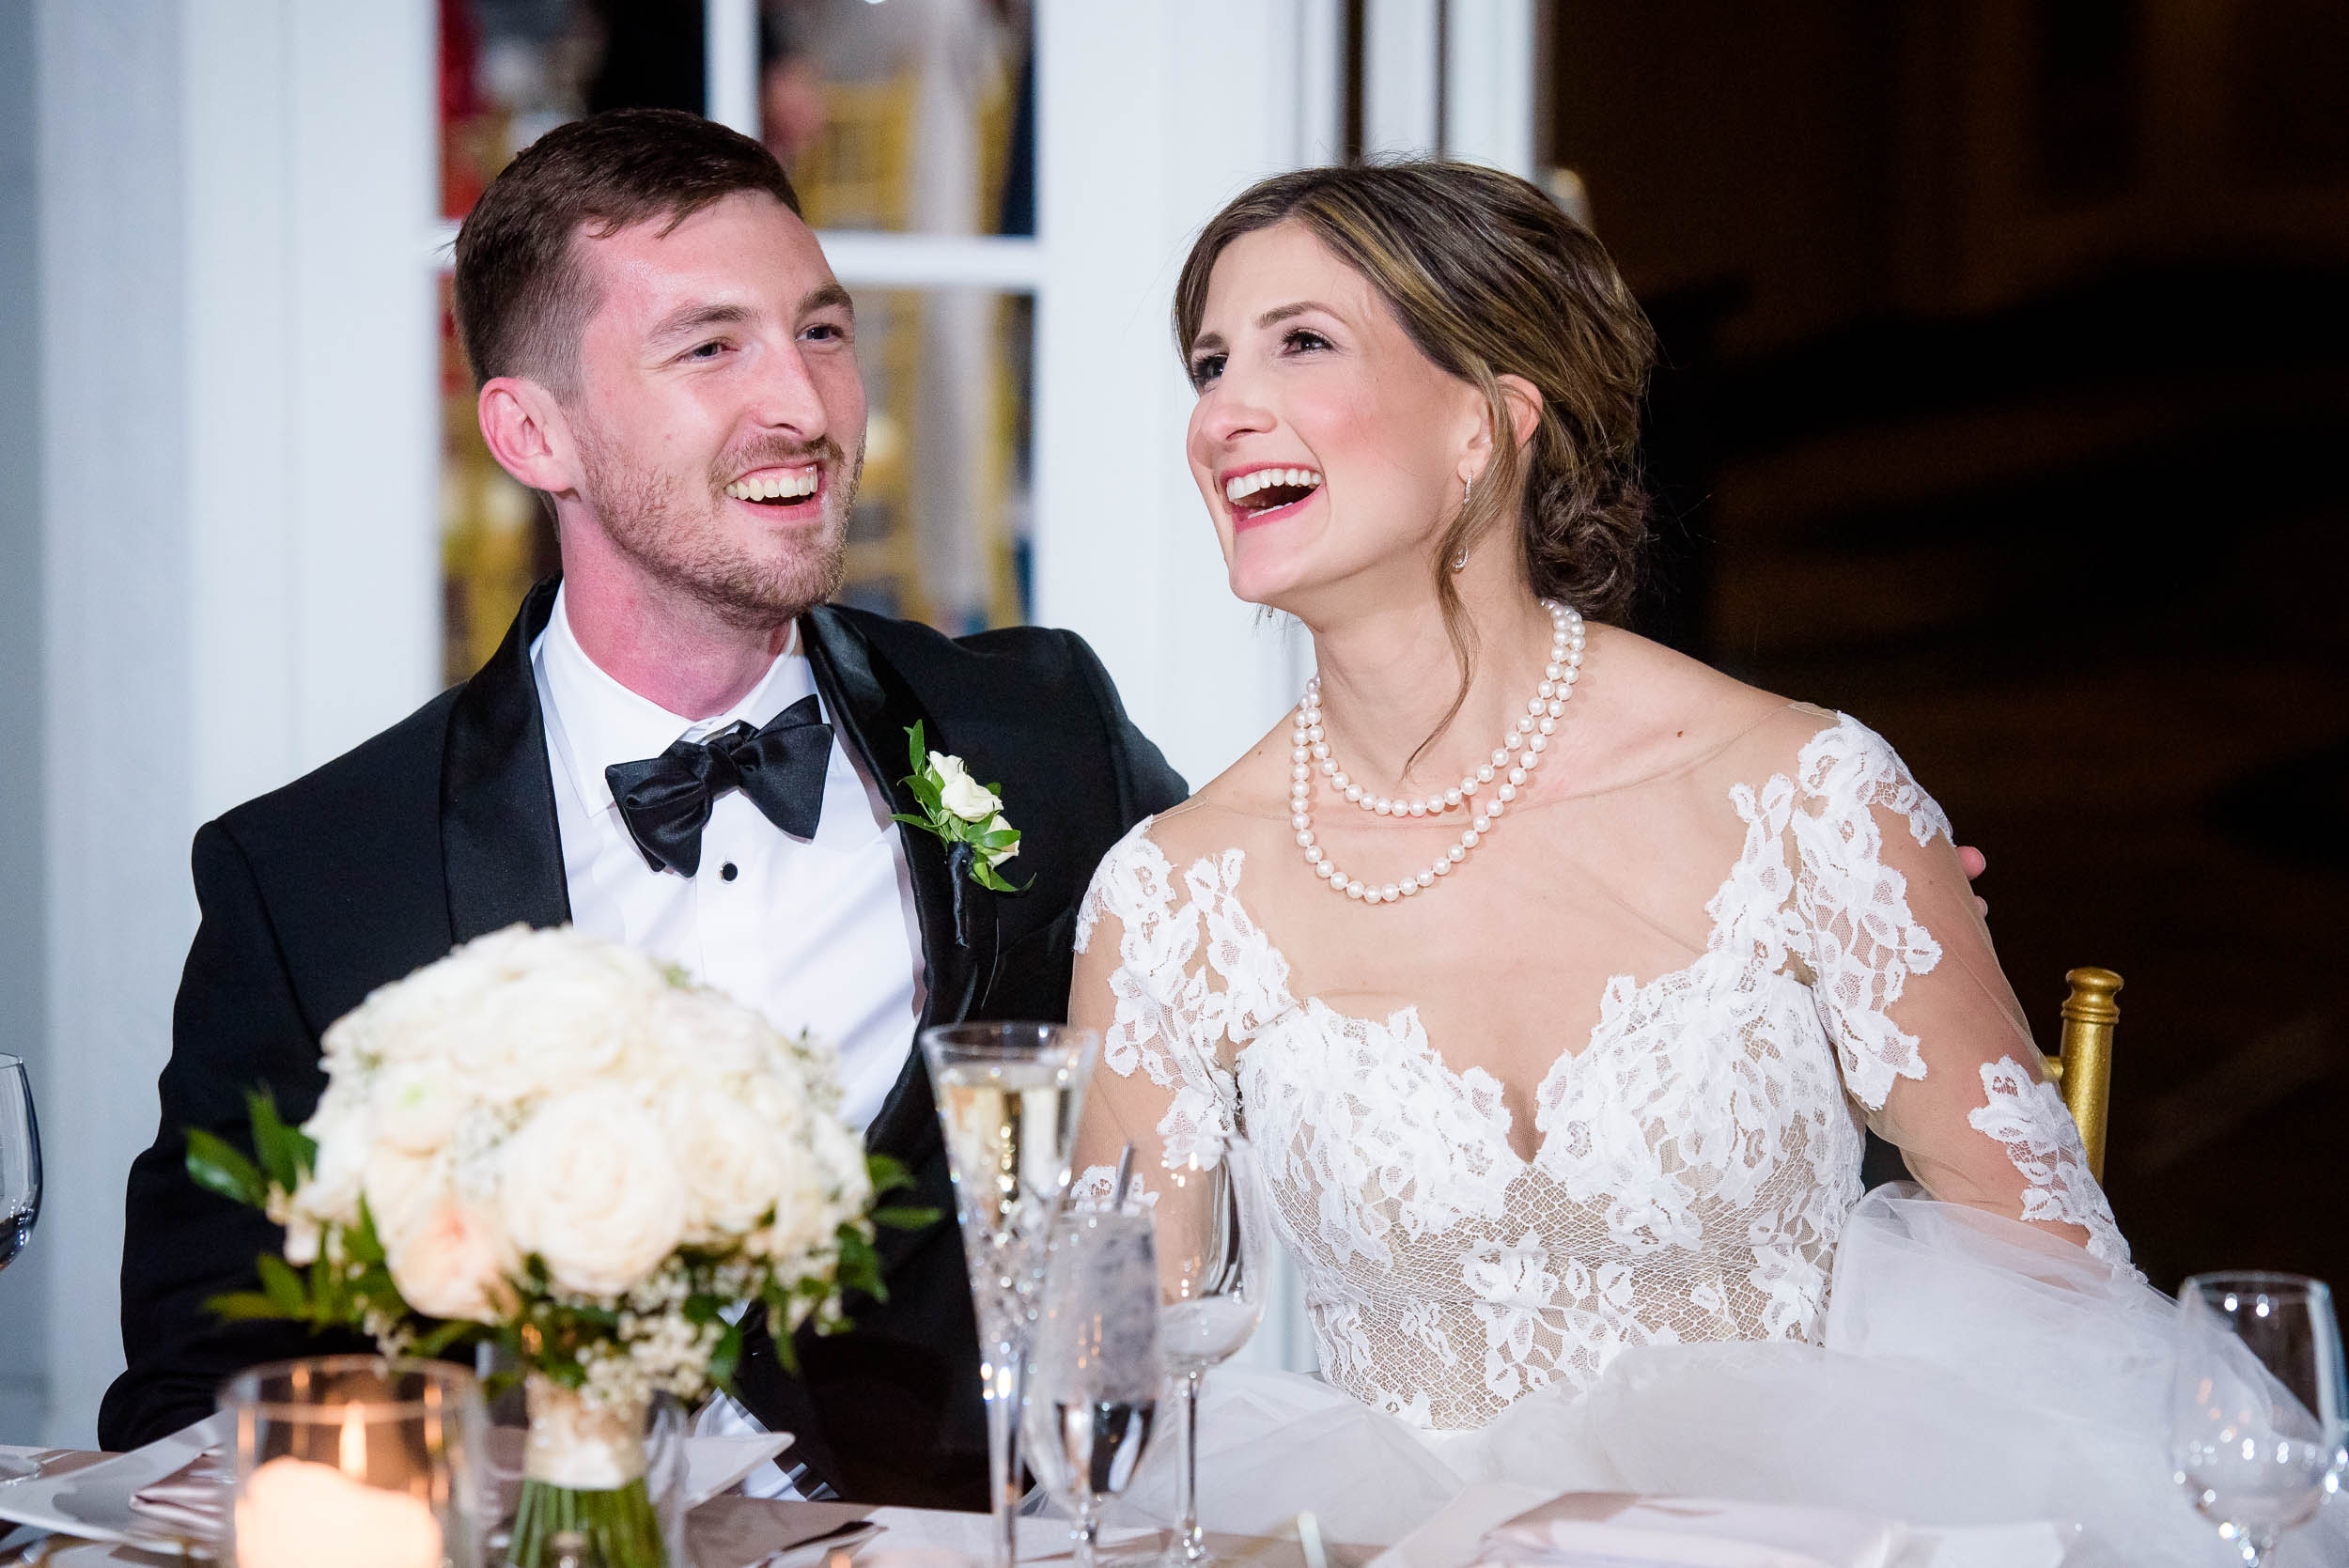 Bride and groom all smiles during a Blackstone Chicago wedding.